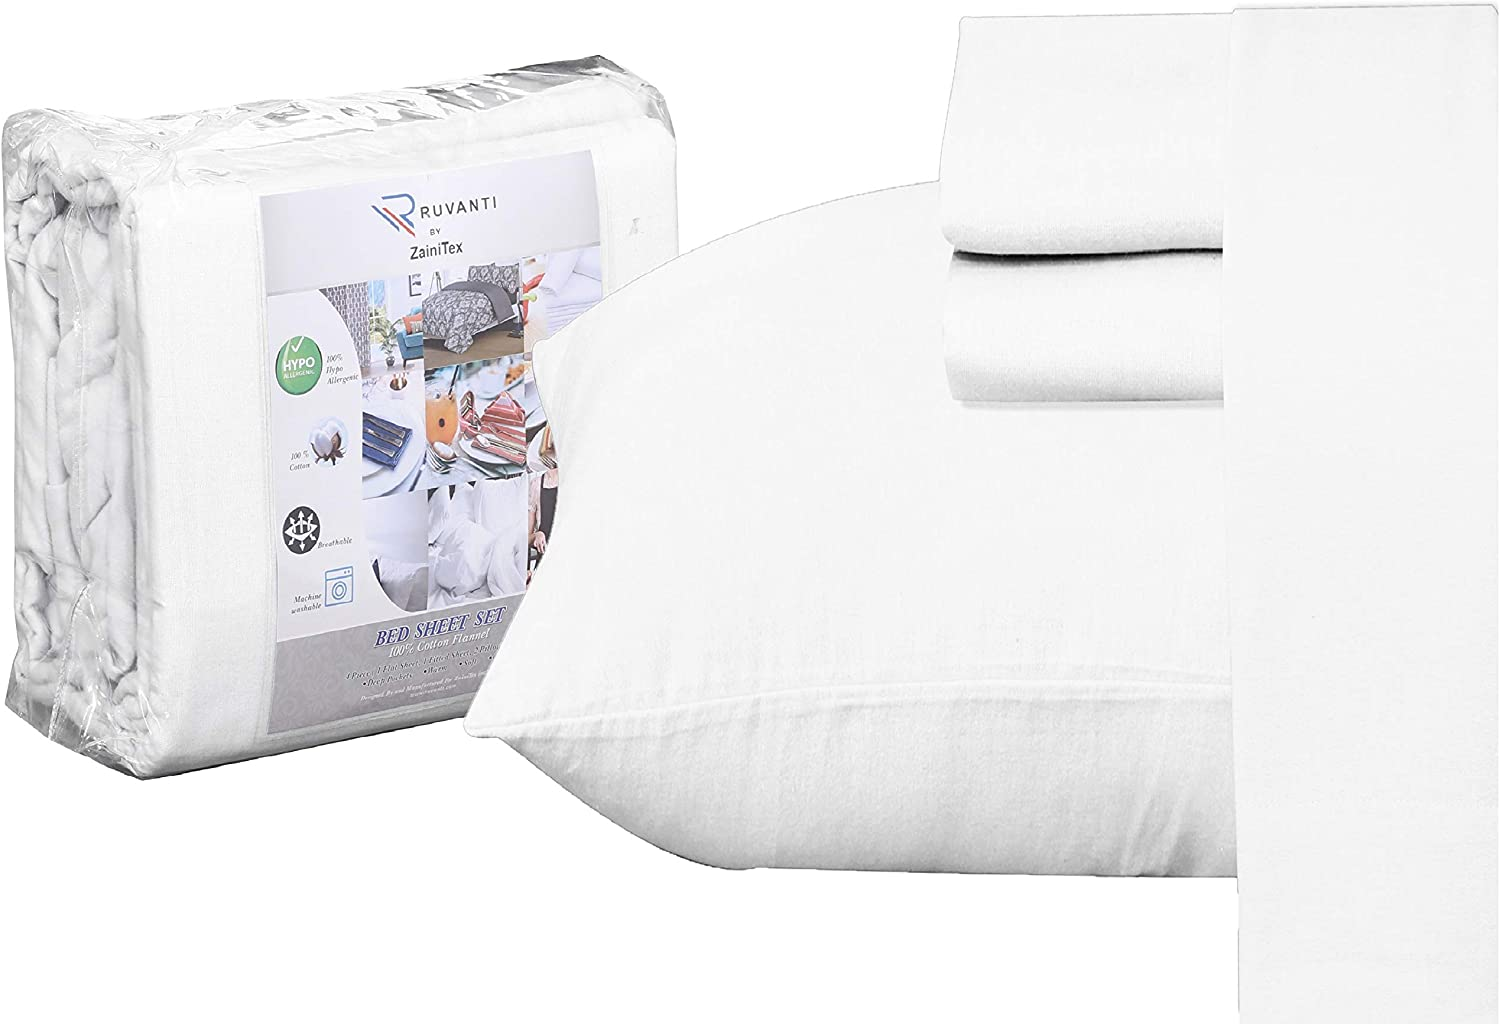 Ruvanti 100% Cotton 4 Piece Flannel Sheets Full-Deep Pocket-All Seasons-Warm-Super Soft-White-Breathable & Moisture Wicking Flannel Bed Sheet Set Full Include Flat, Fitted Sheet & 2 Pillowcases